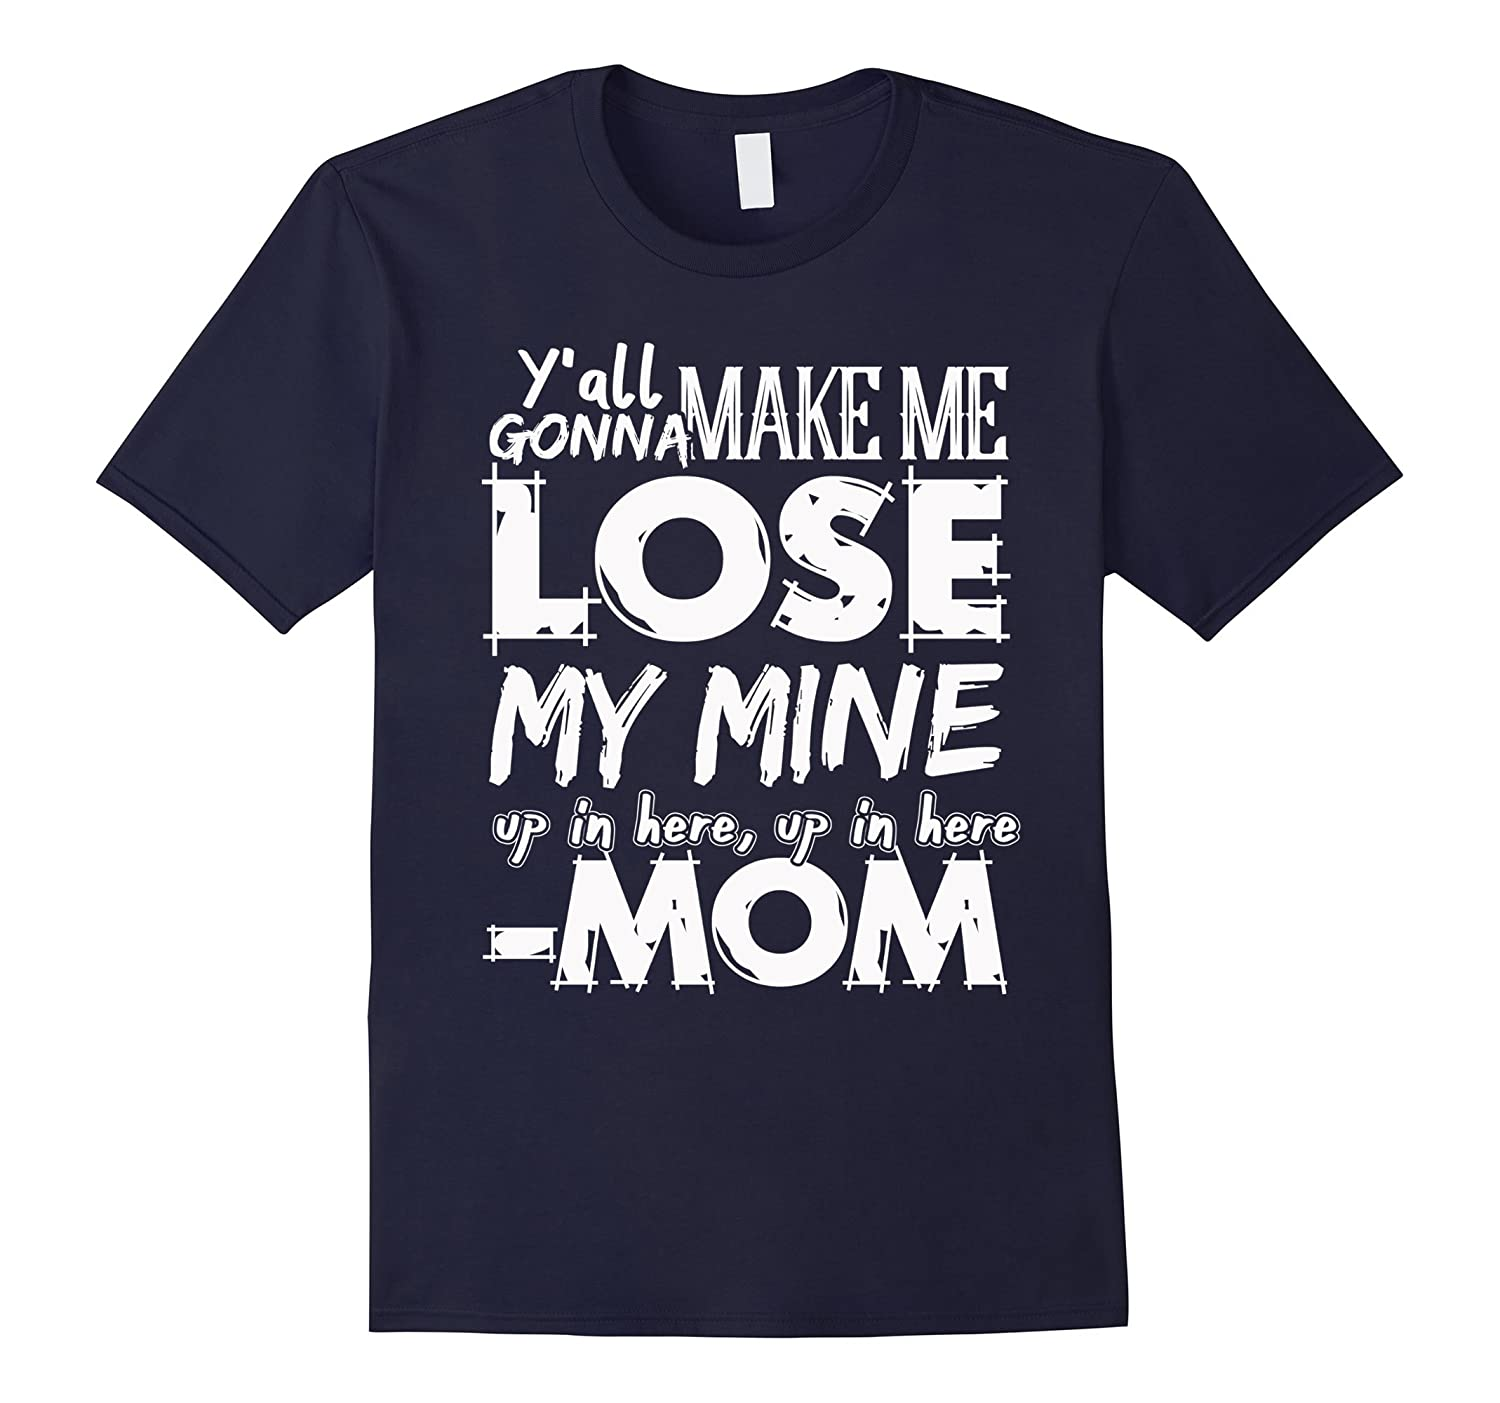 Y'all gonna make me lose my mind t shirt mom funny Gift-Art